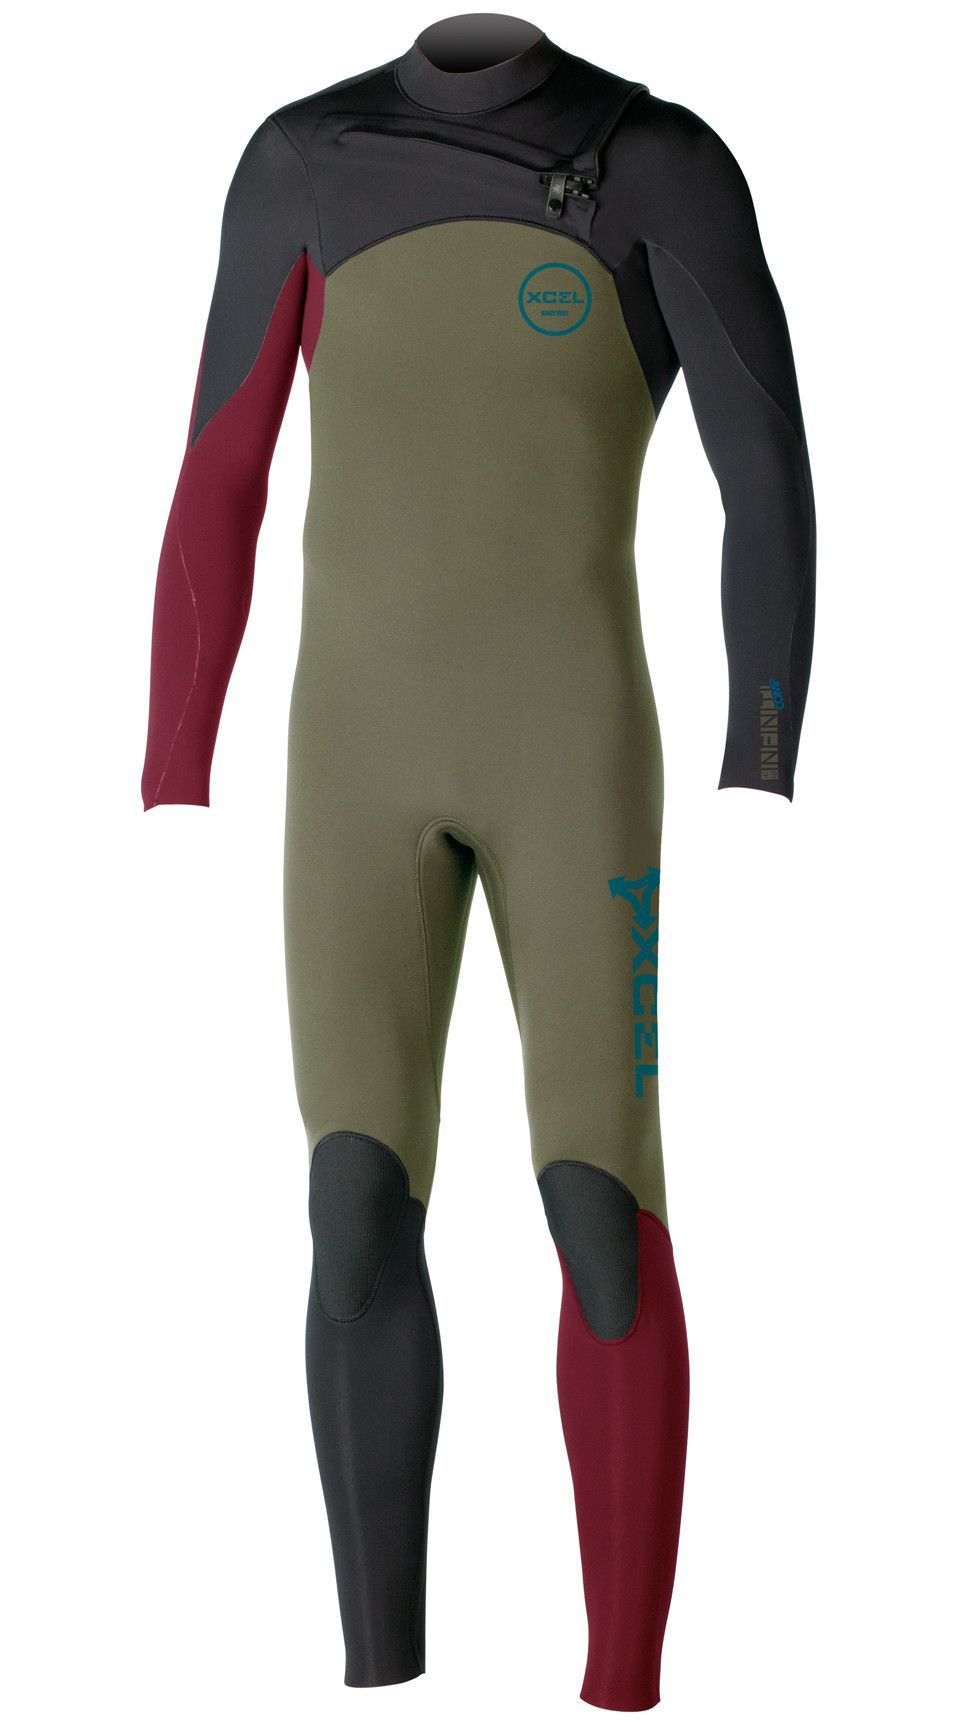 6d5c17bf733 Xcel Youth Wetsuit Comp X 4 3mm Fullsuit in 2019